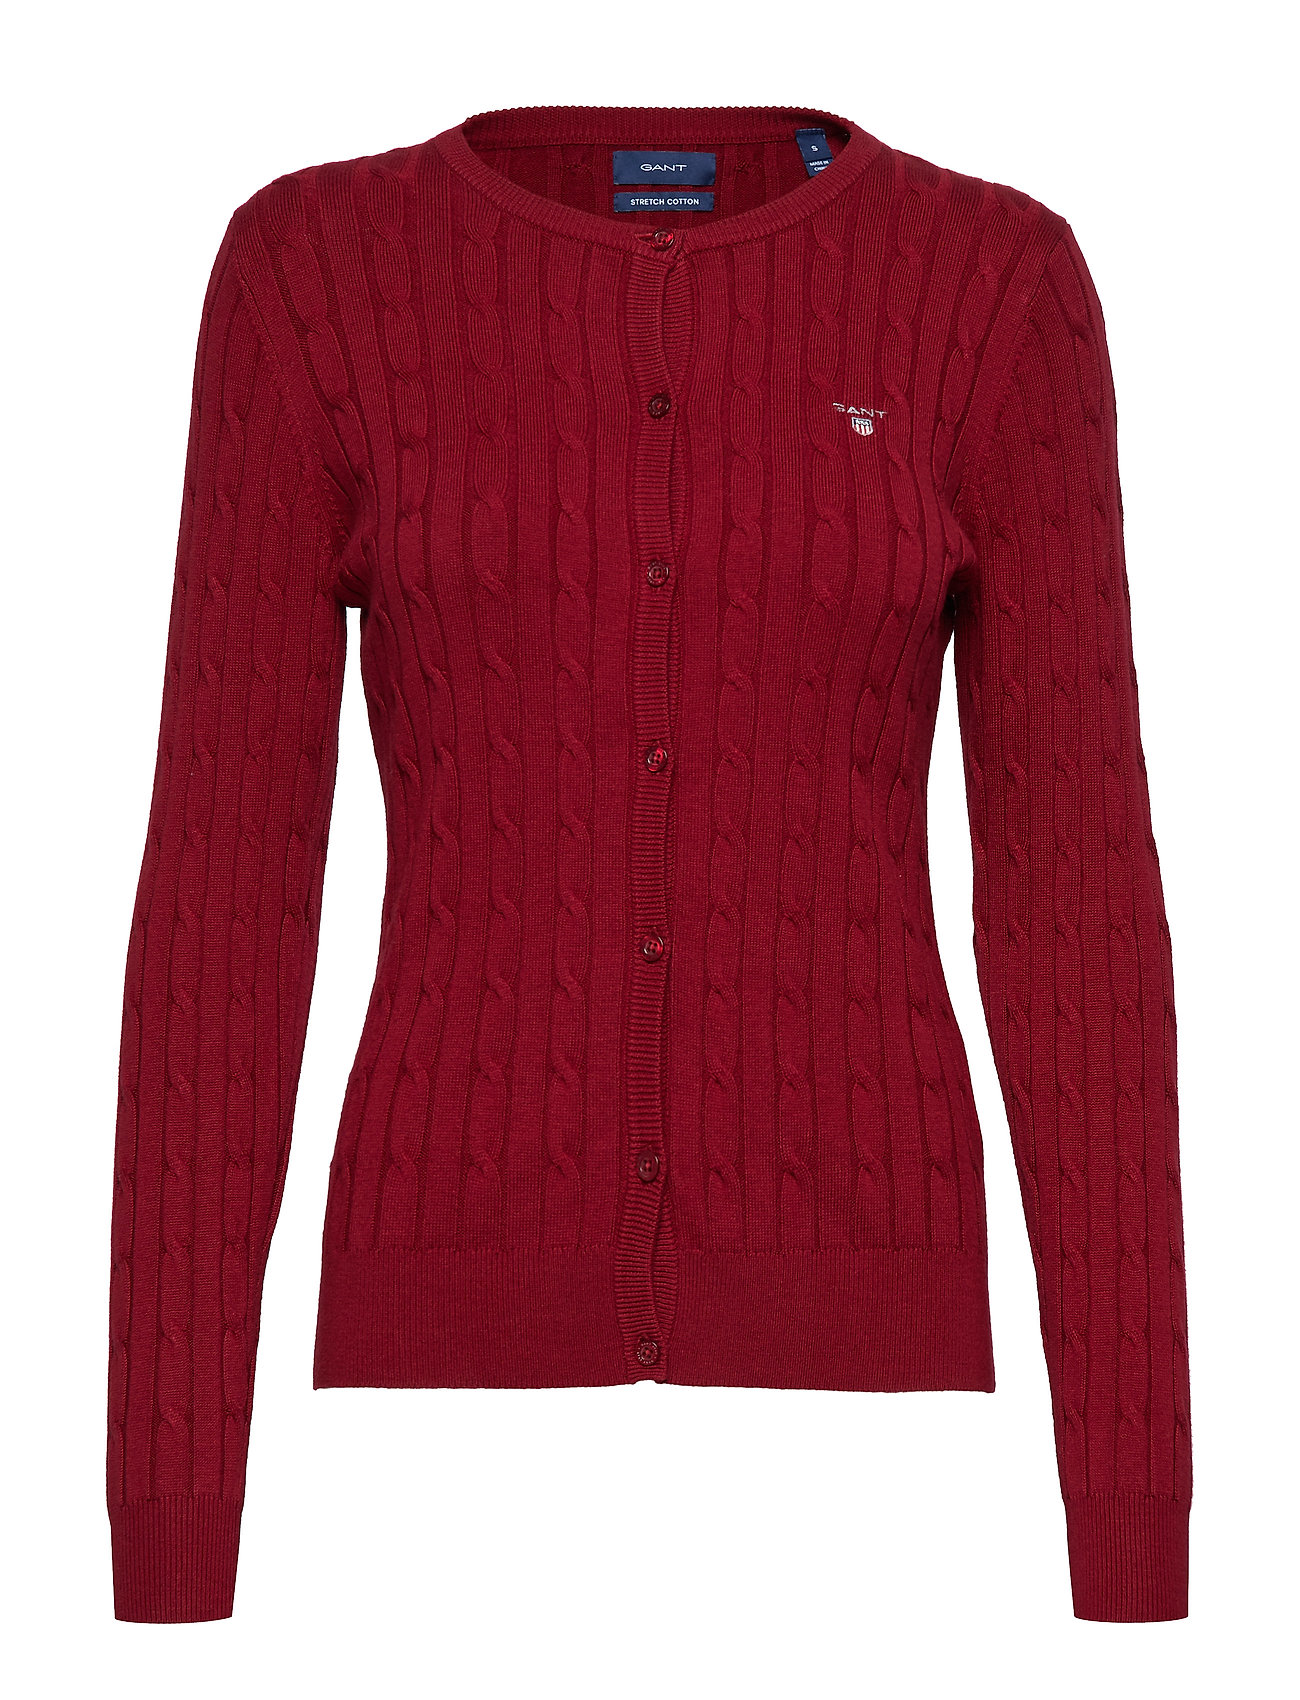 Gant STRETCH COTTON CABLE CREW CARDIGAN - MAHOGNY RED